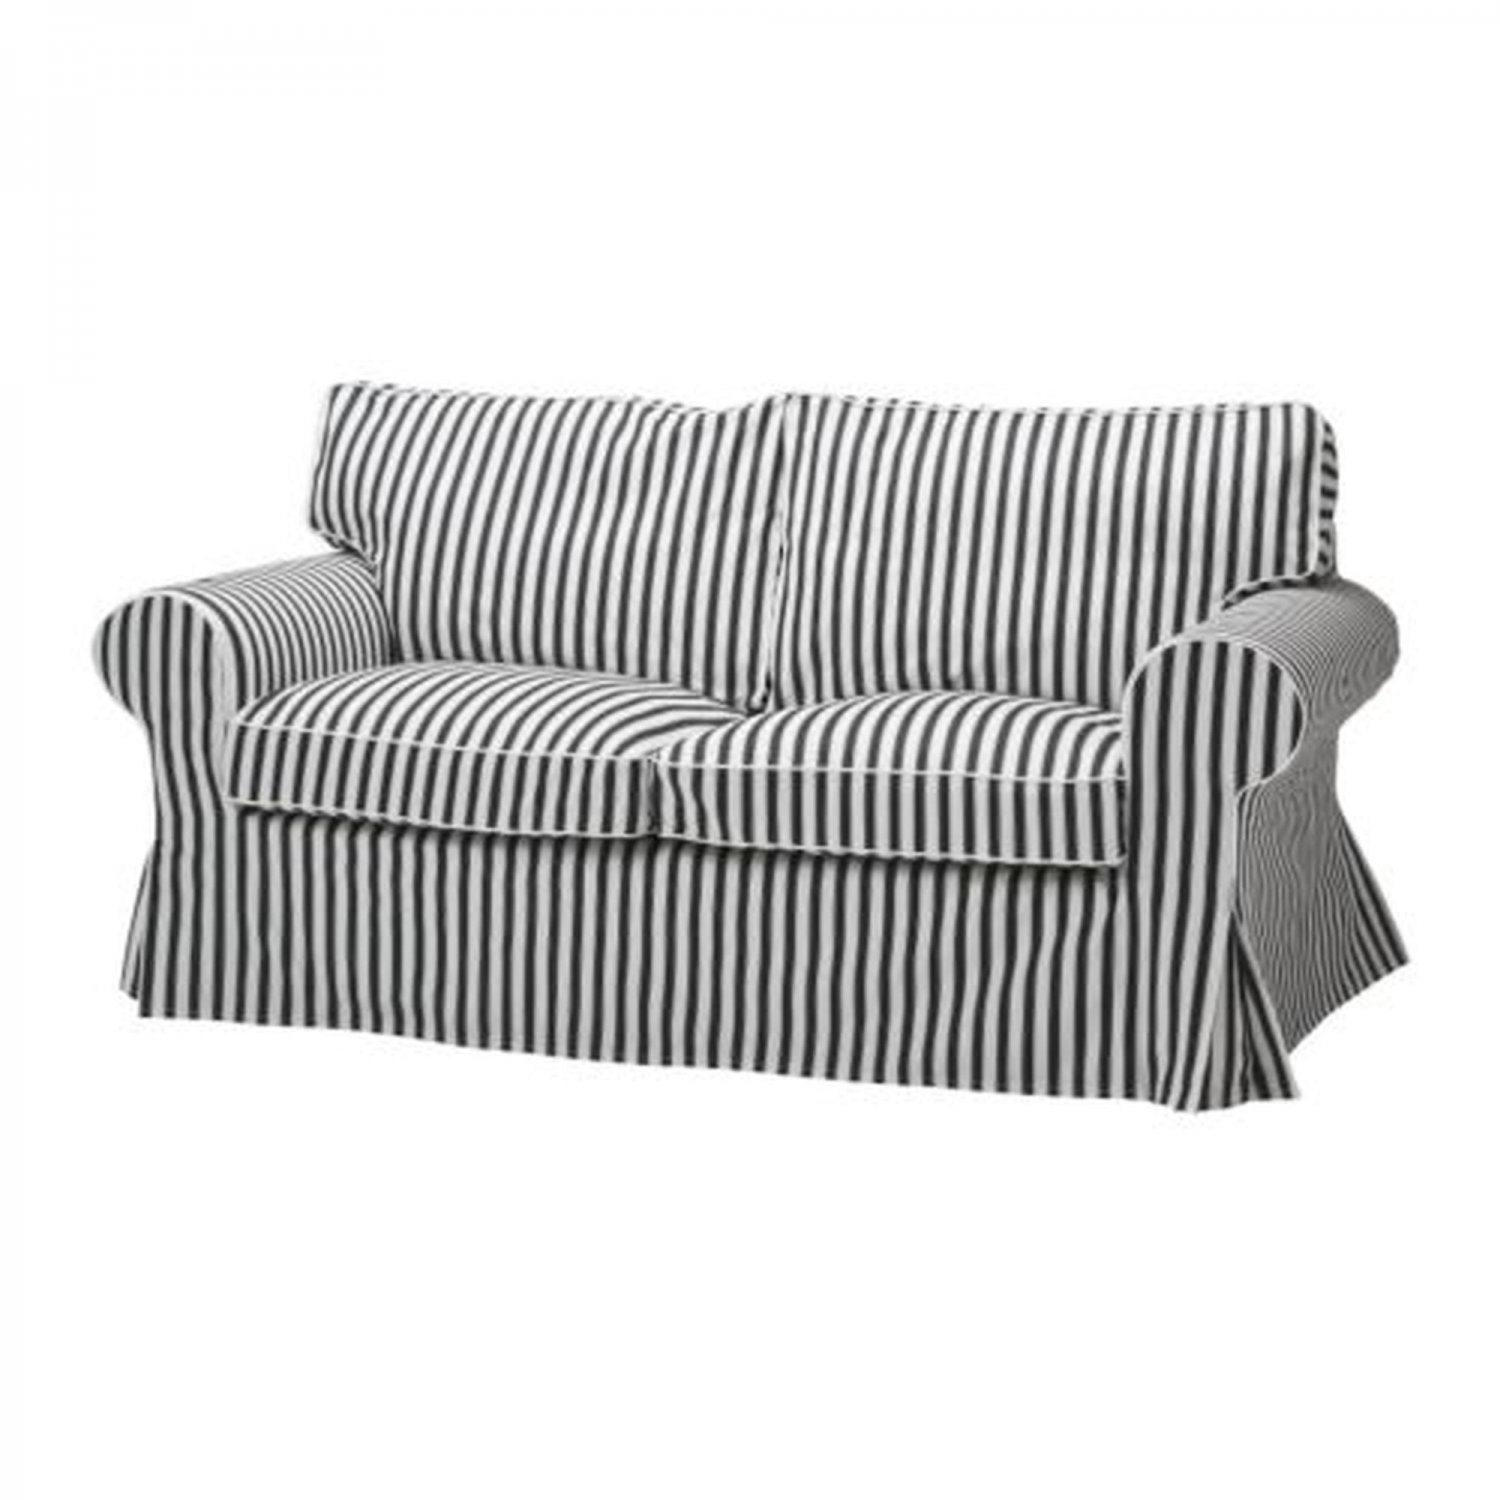 Ikea Ektorp Sofa Bed Slipcover Cover Vallsta Black White